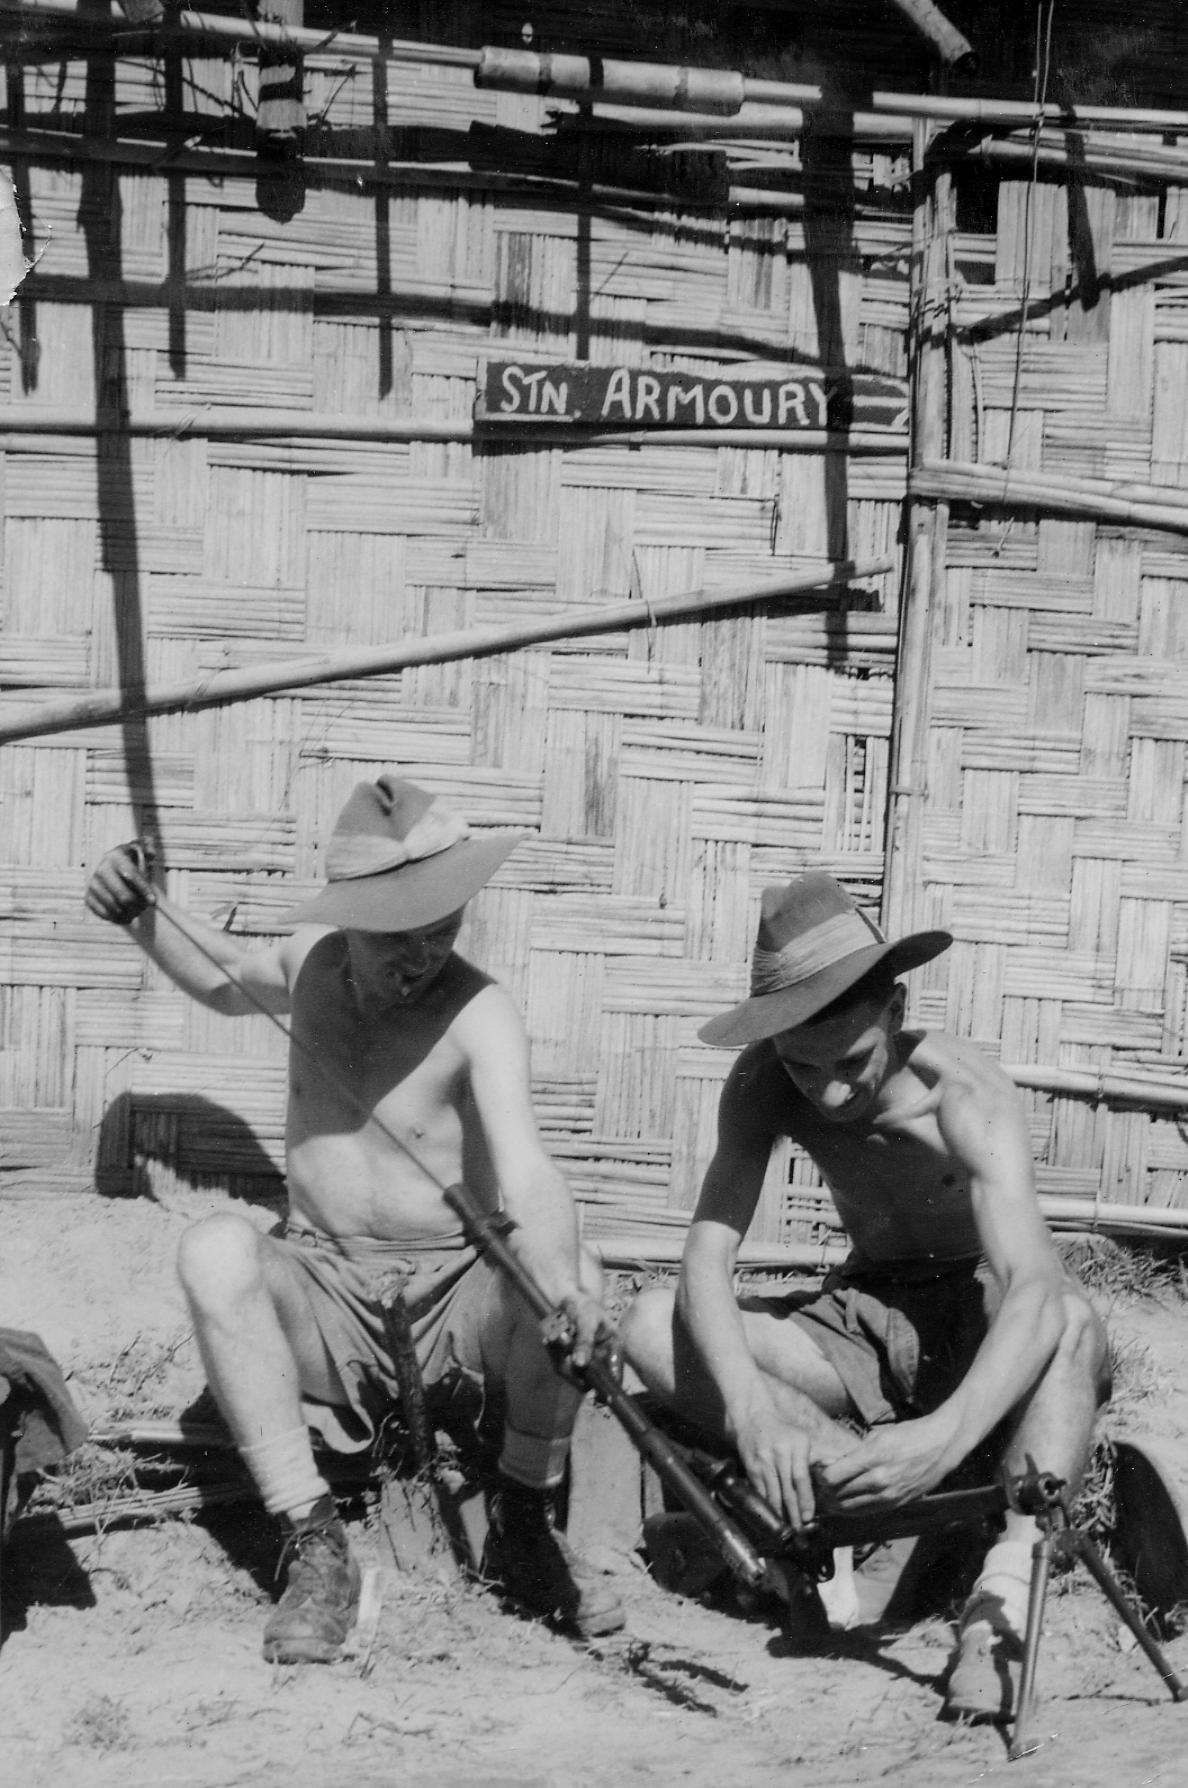 Two airmen of the RAF Regiment cleaning and oiling a Bren gun outside the Armoury of their camp at Maungdaw, Burma